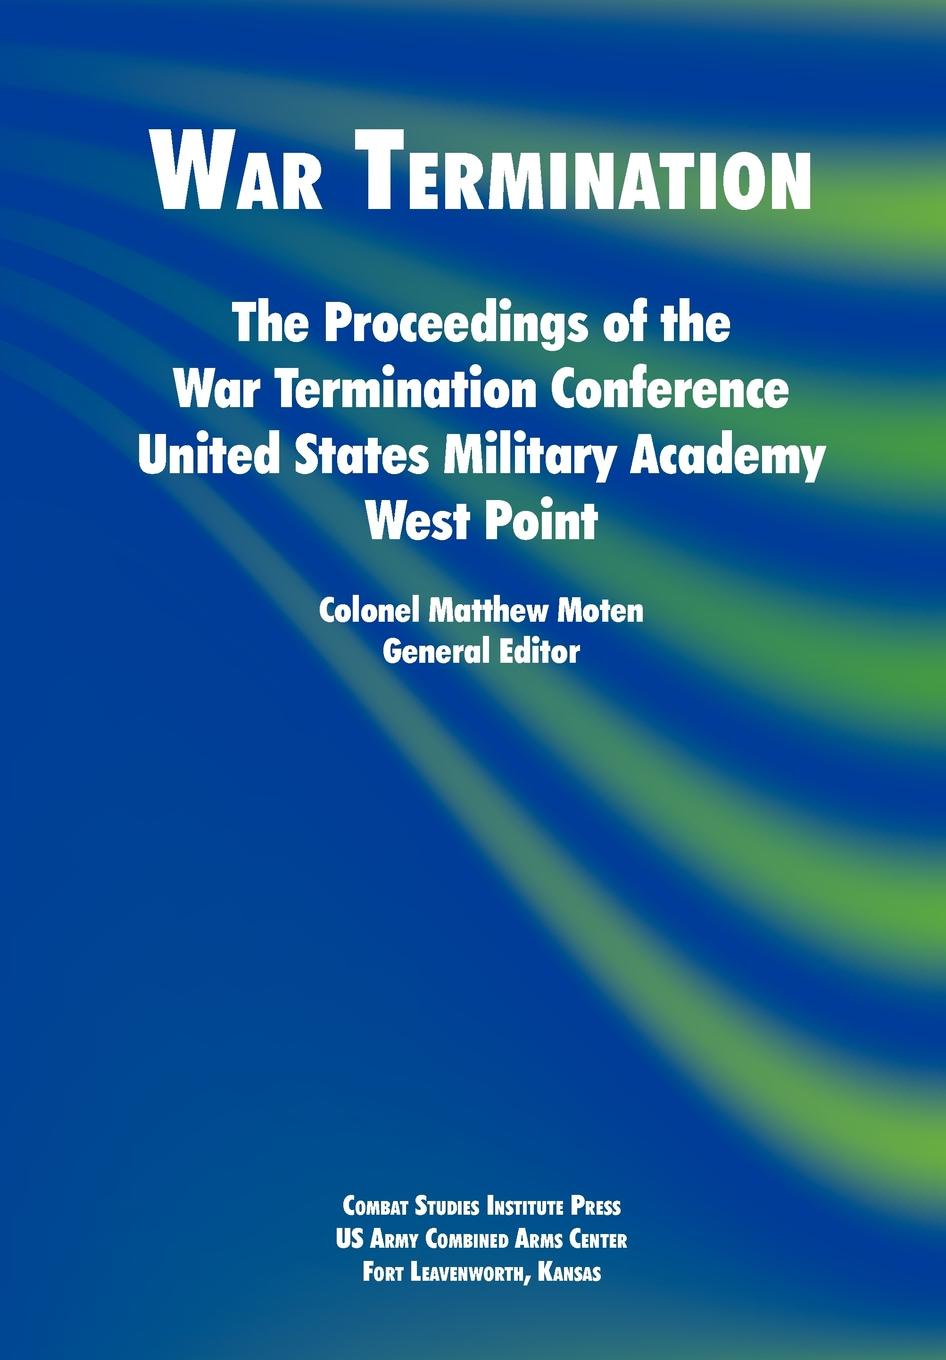 Combat Studies Institute War Termination. The Proceedings of the War Termination Conference, United States Military Academy West Point nap national academy press the medical implications of nuclear war paper